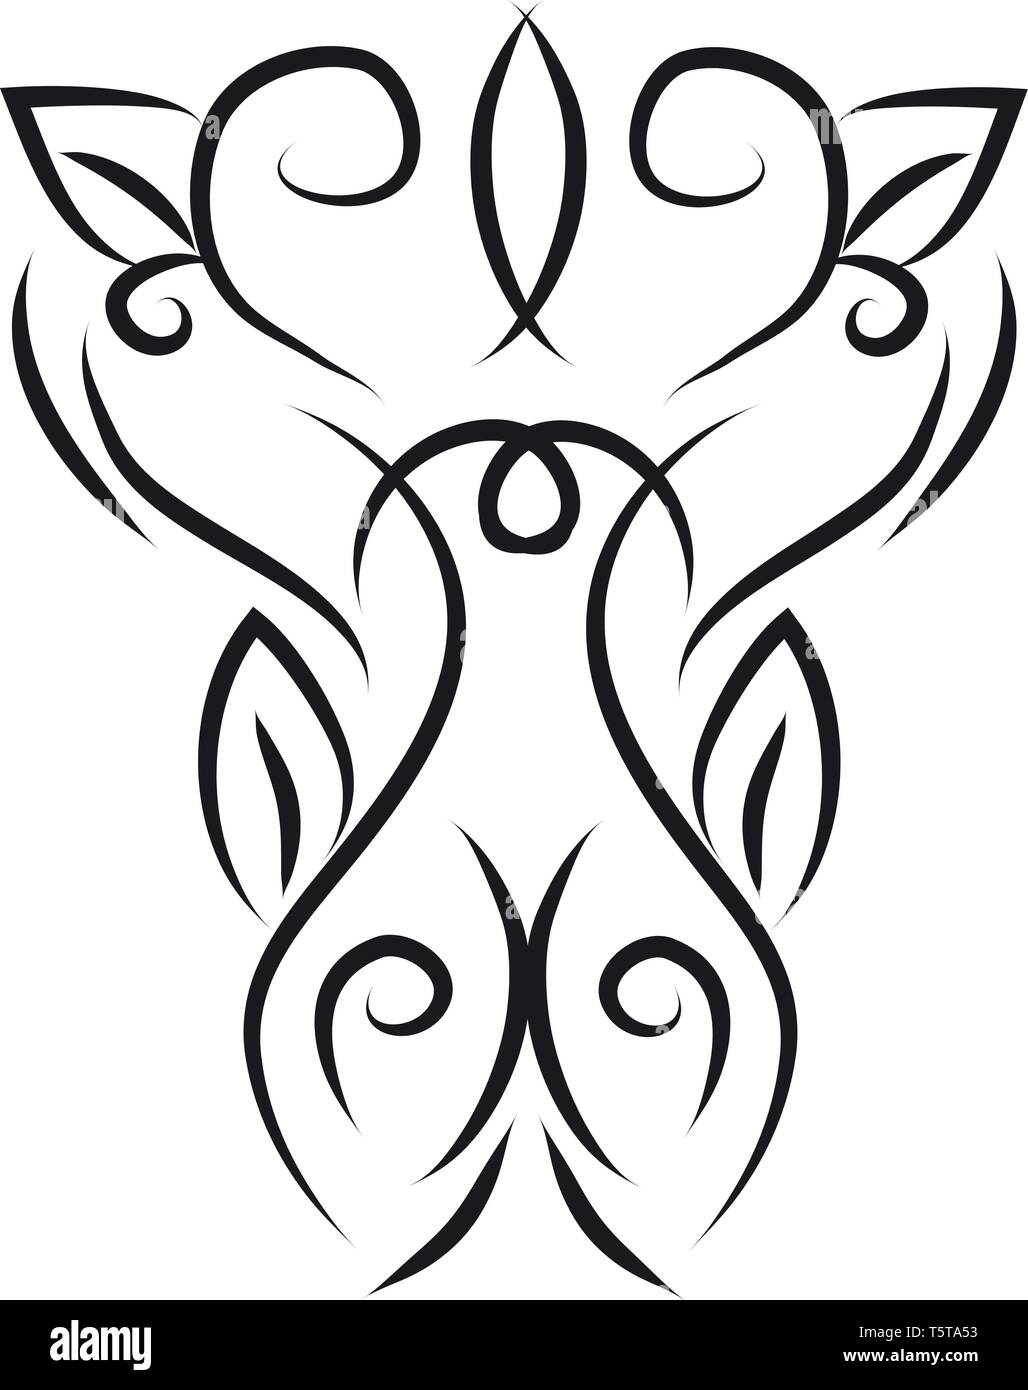 A Line Art Of Abstract Patterns Vector Color Drawing Or